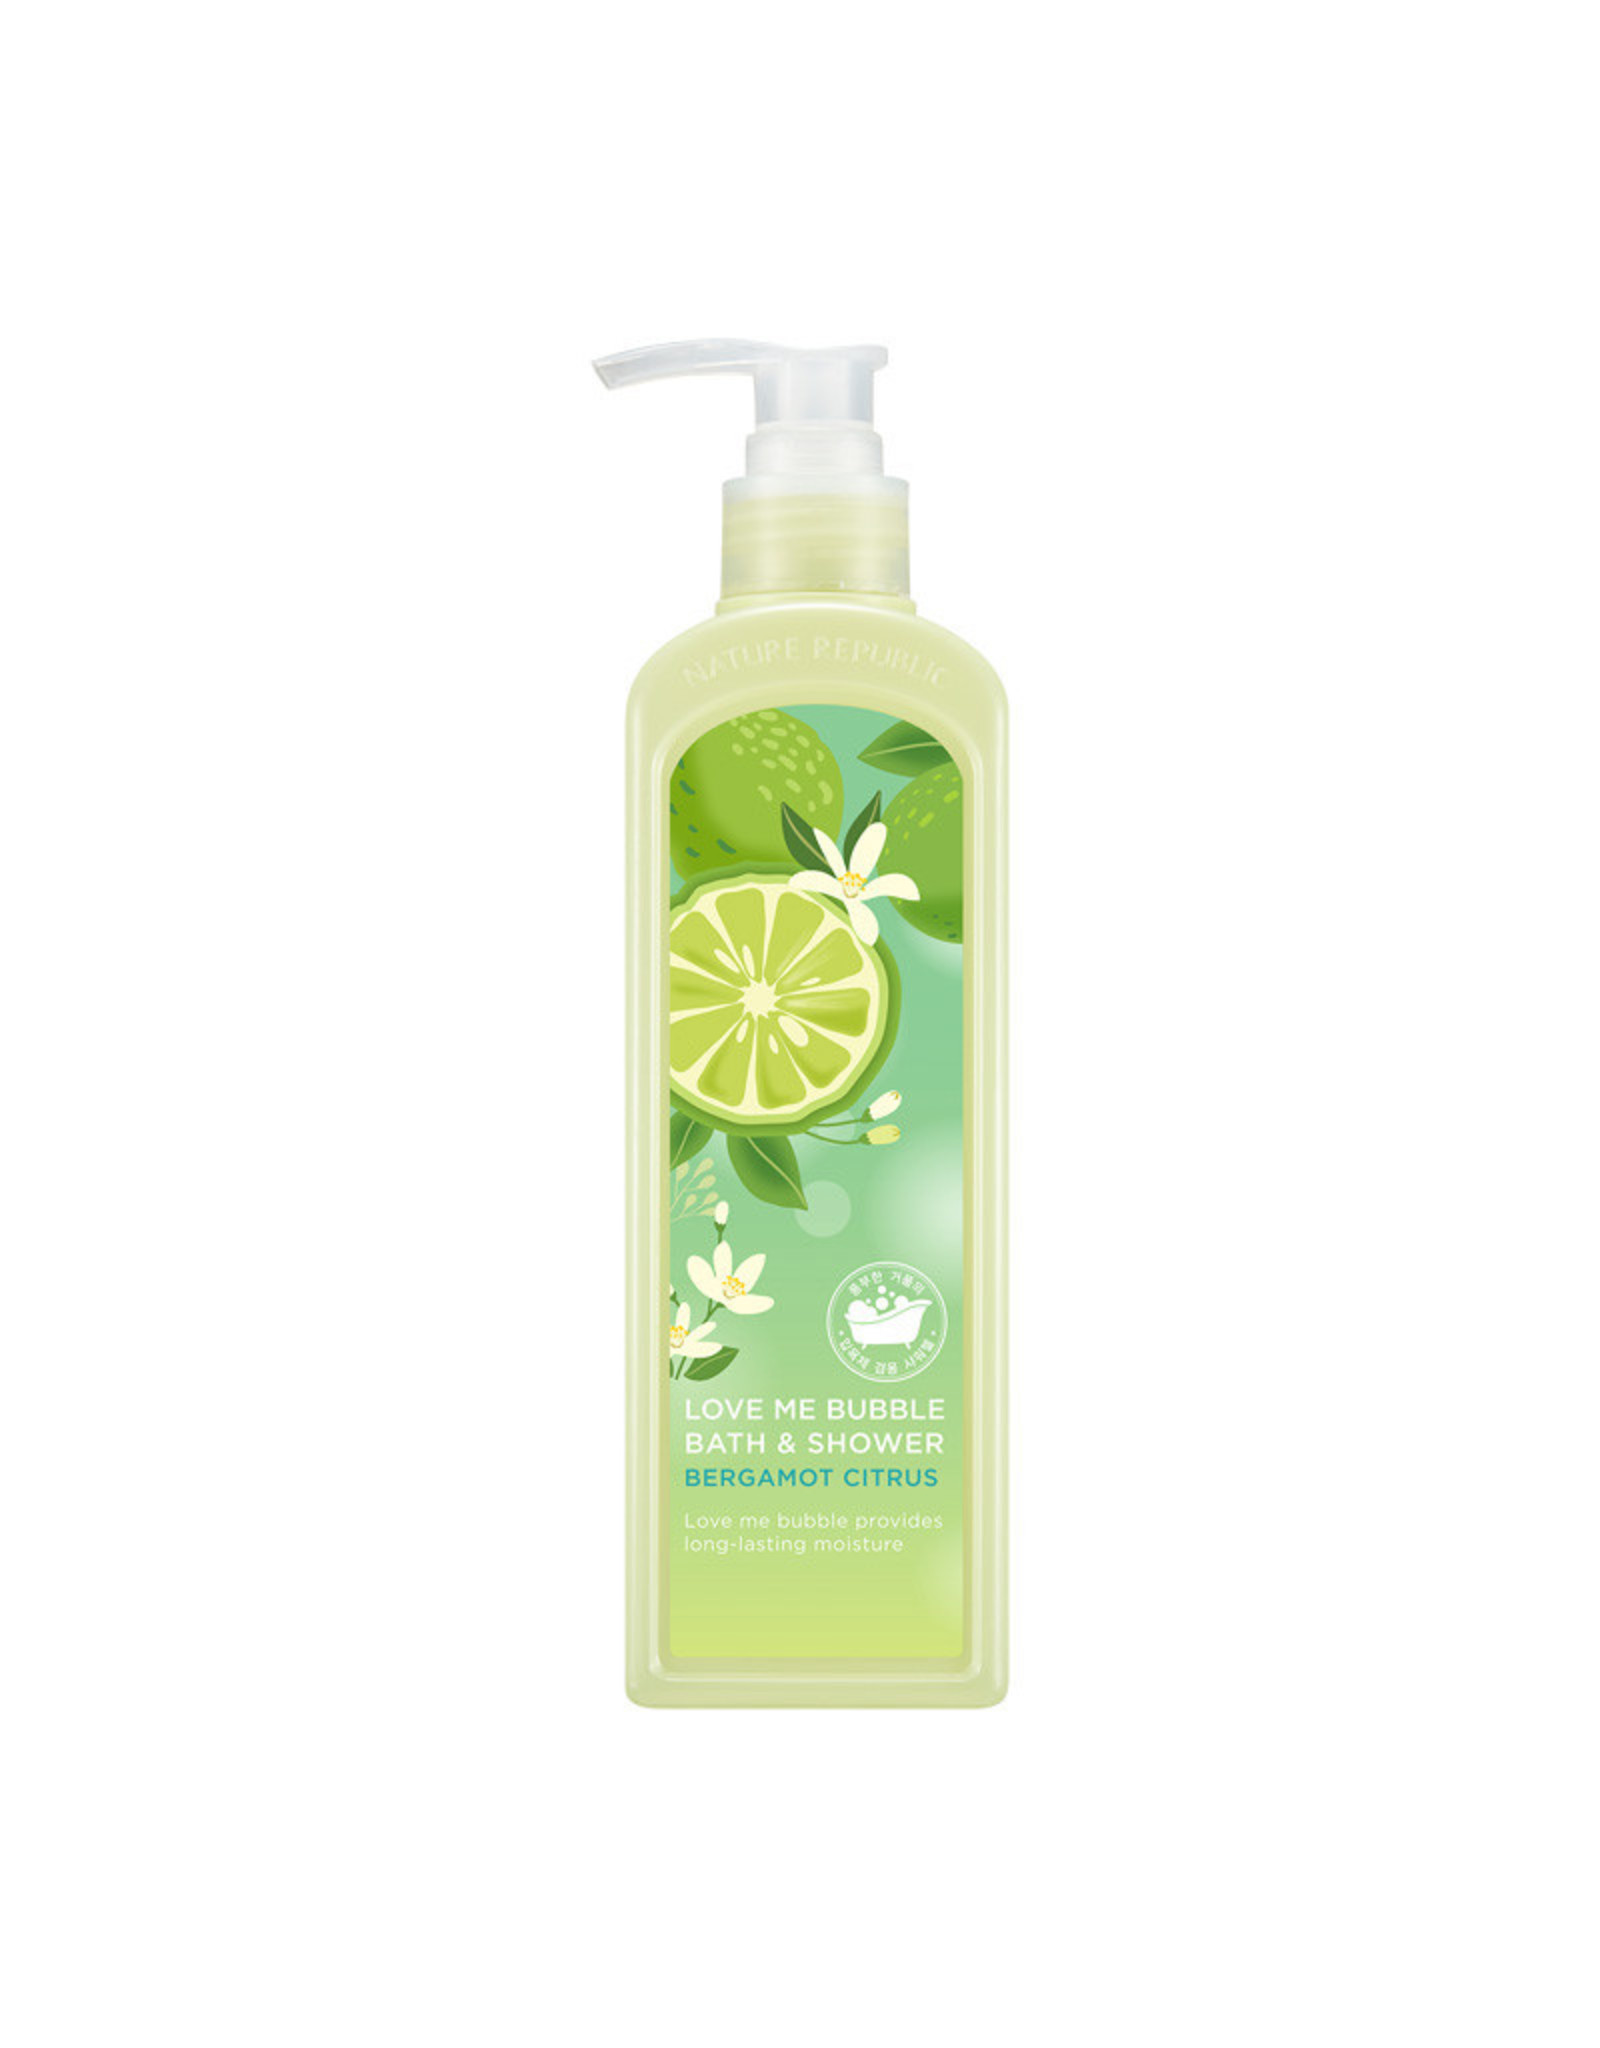 Love Me Bubble Bath & Shower Gel-Bergamot Citrus (Orig 22.90)